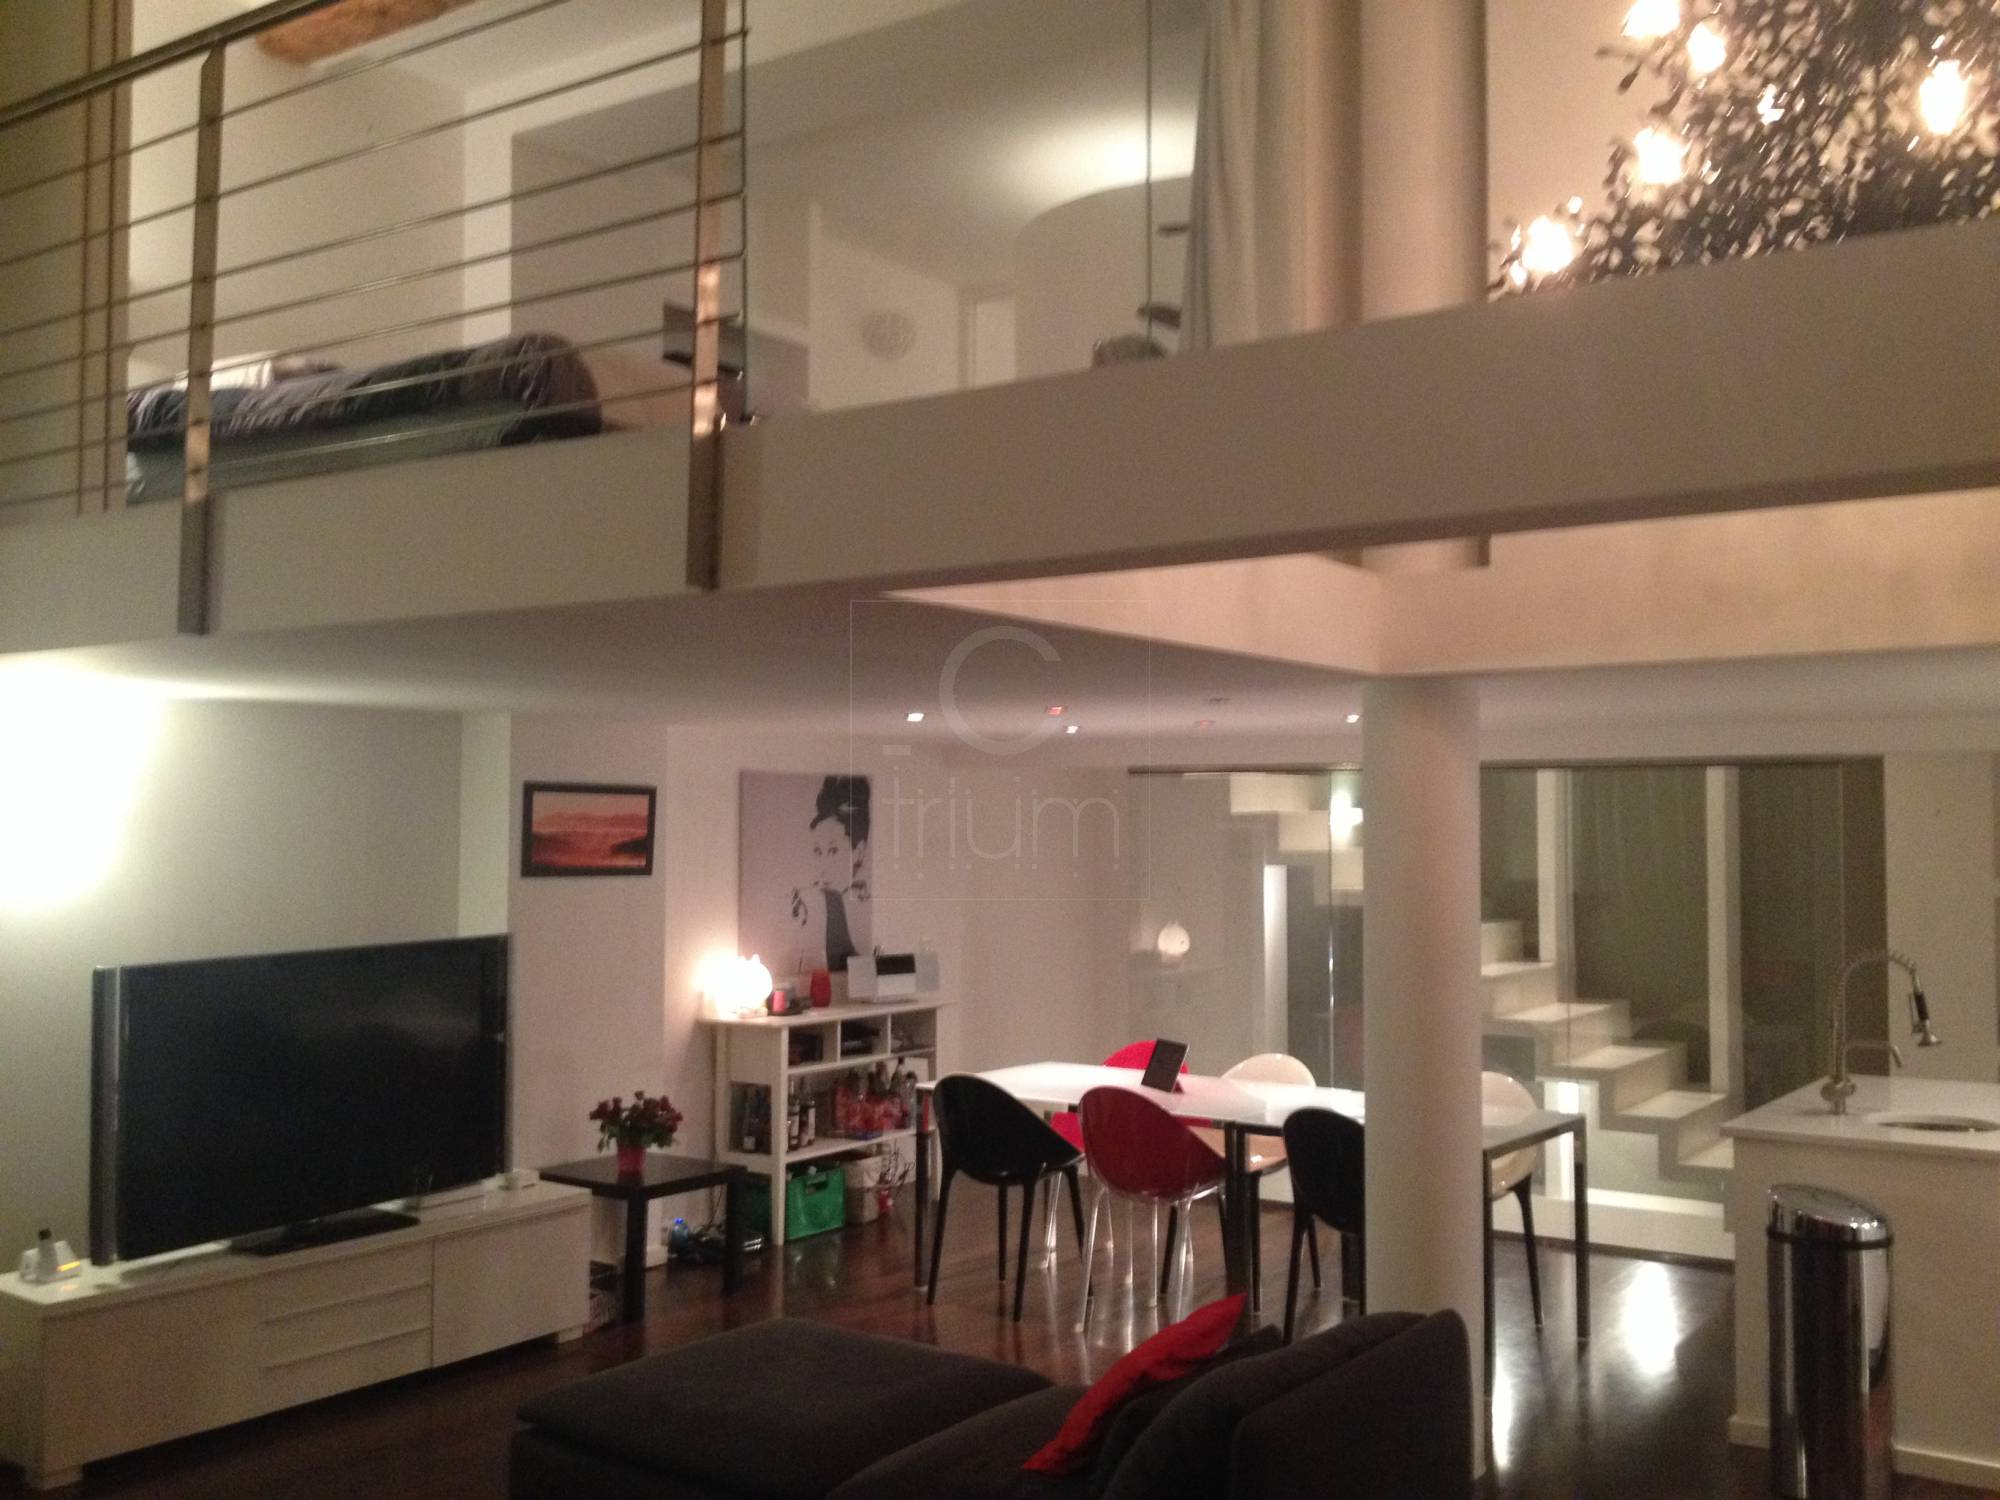 Vente appartement t4 f4 marseille 13006 bd notre dame for Vente appartement paris atypique